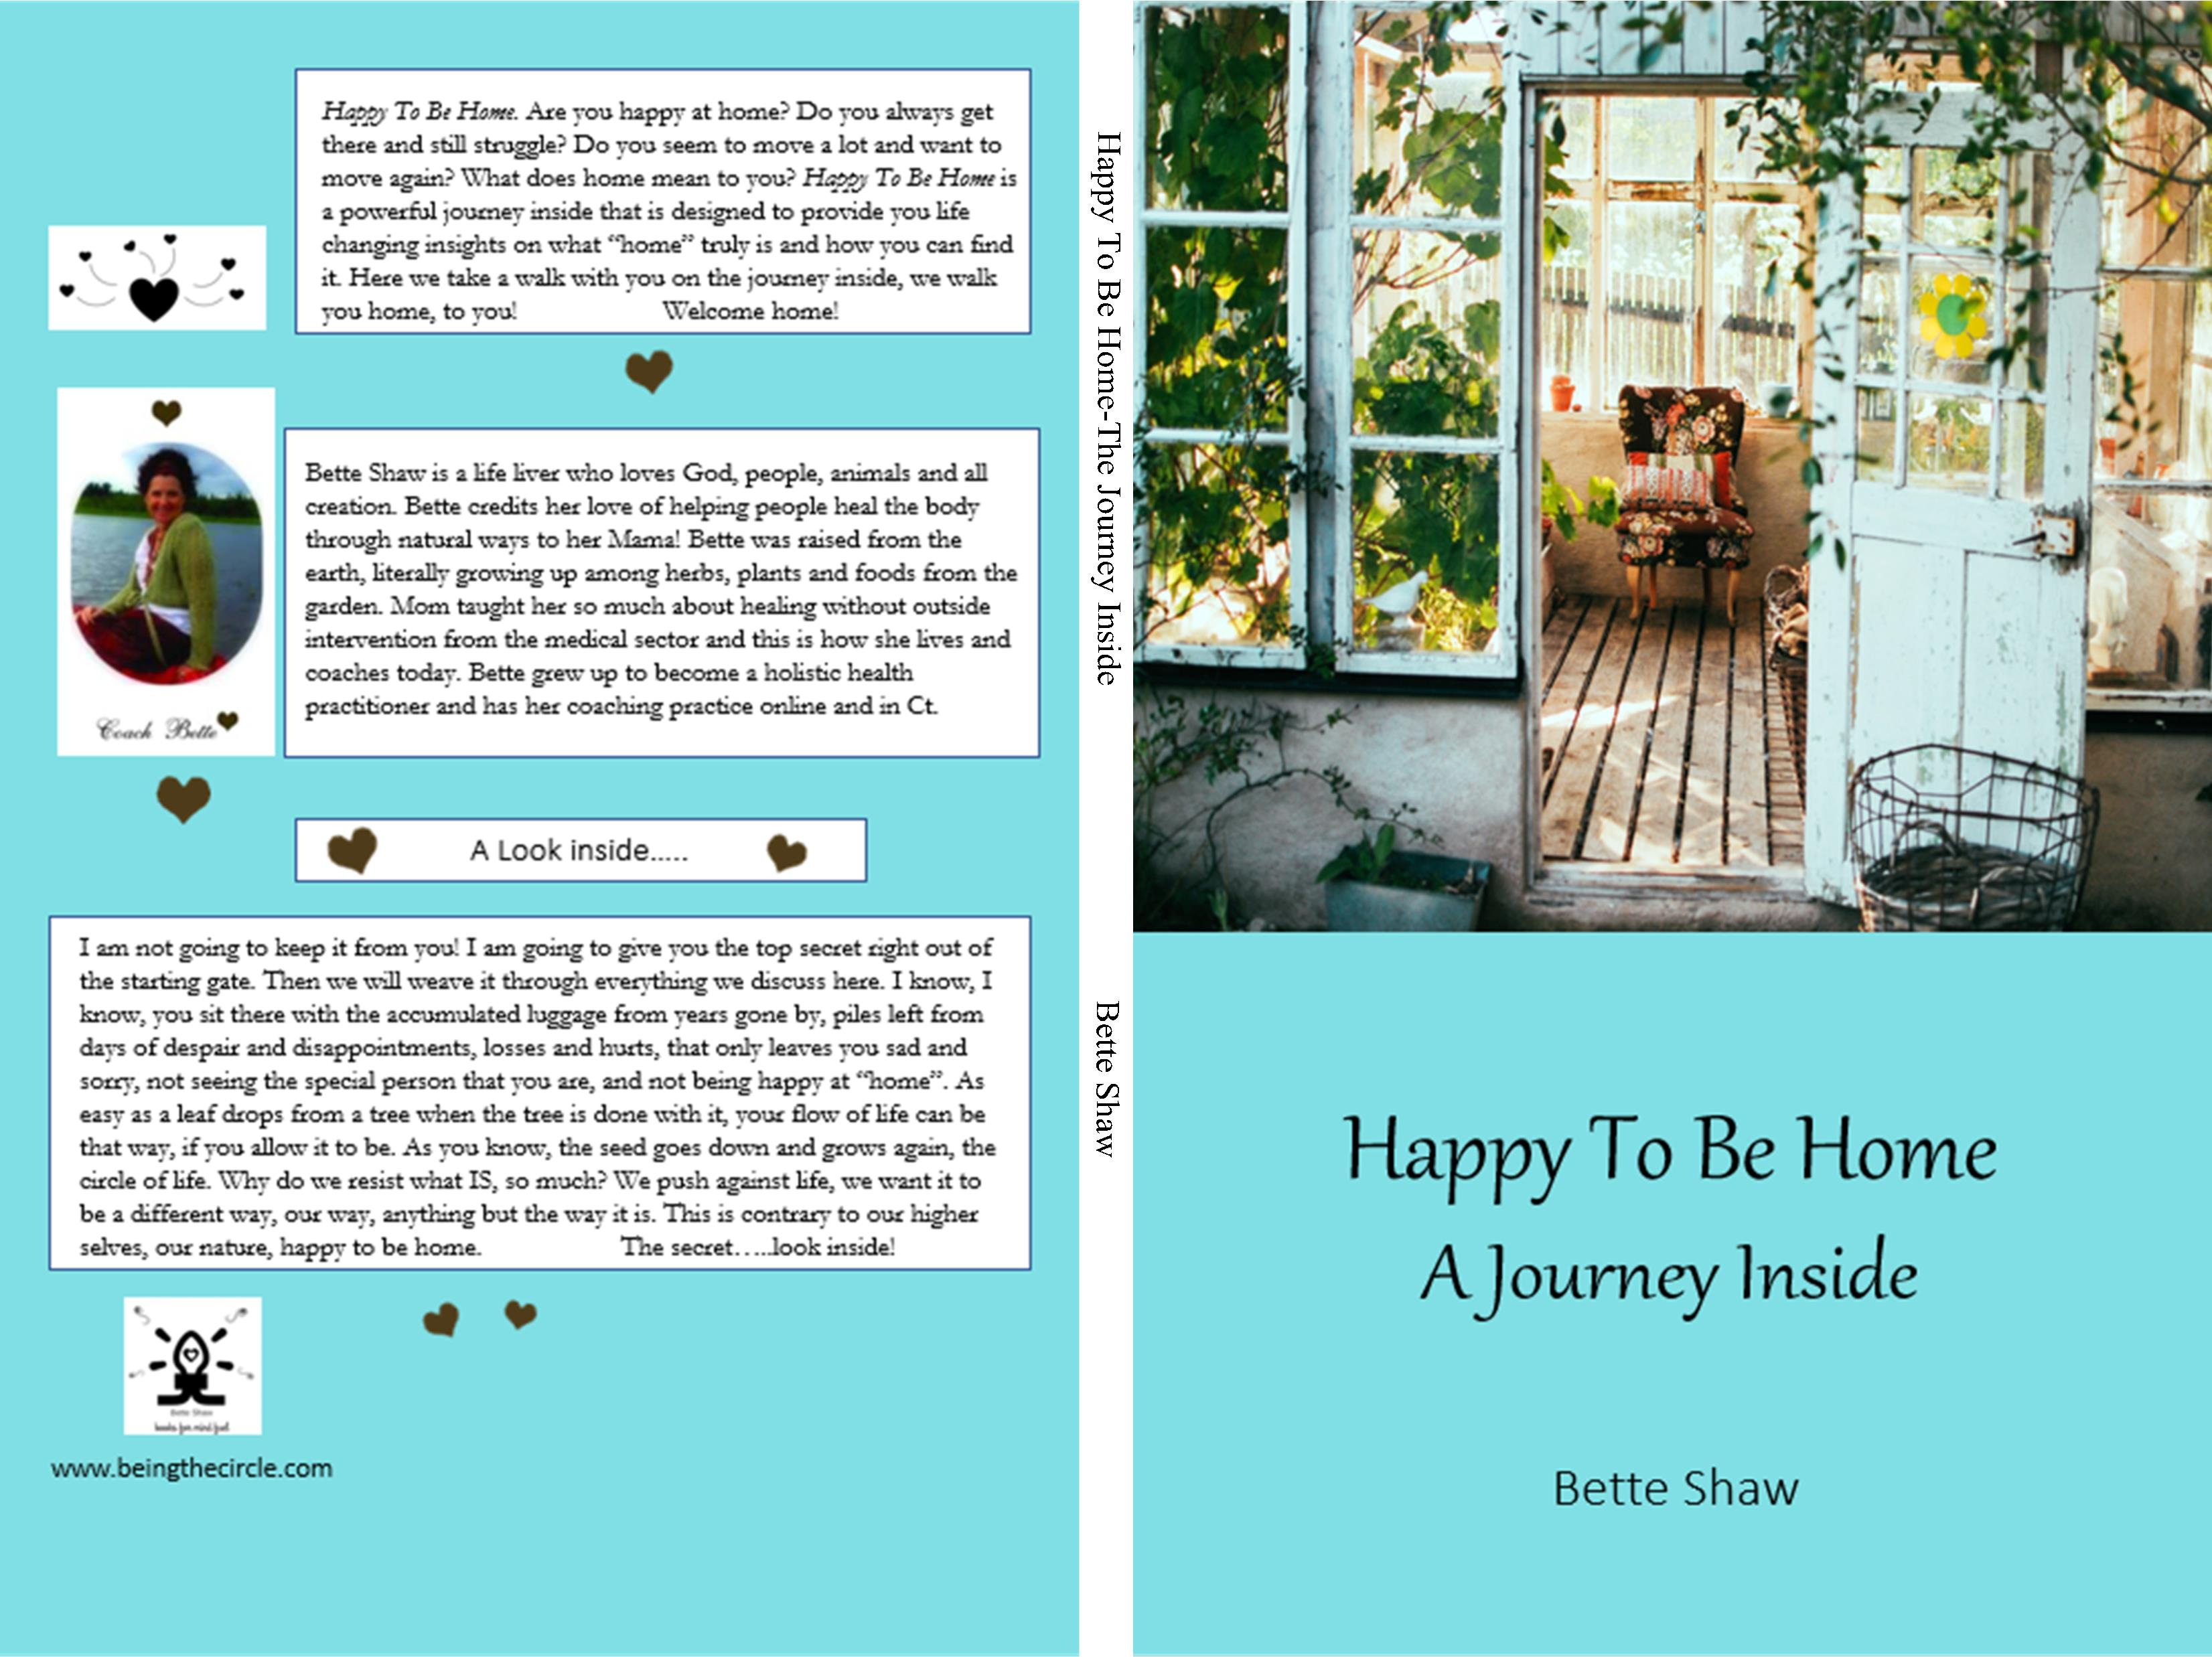 Happy To Be Home-The Journey Inside cover image